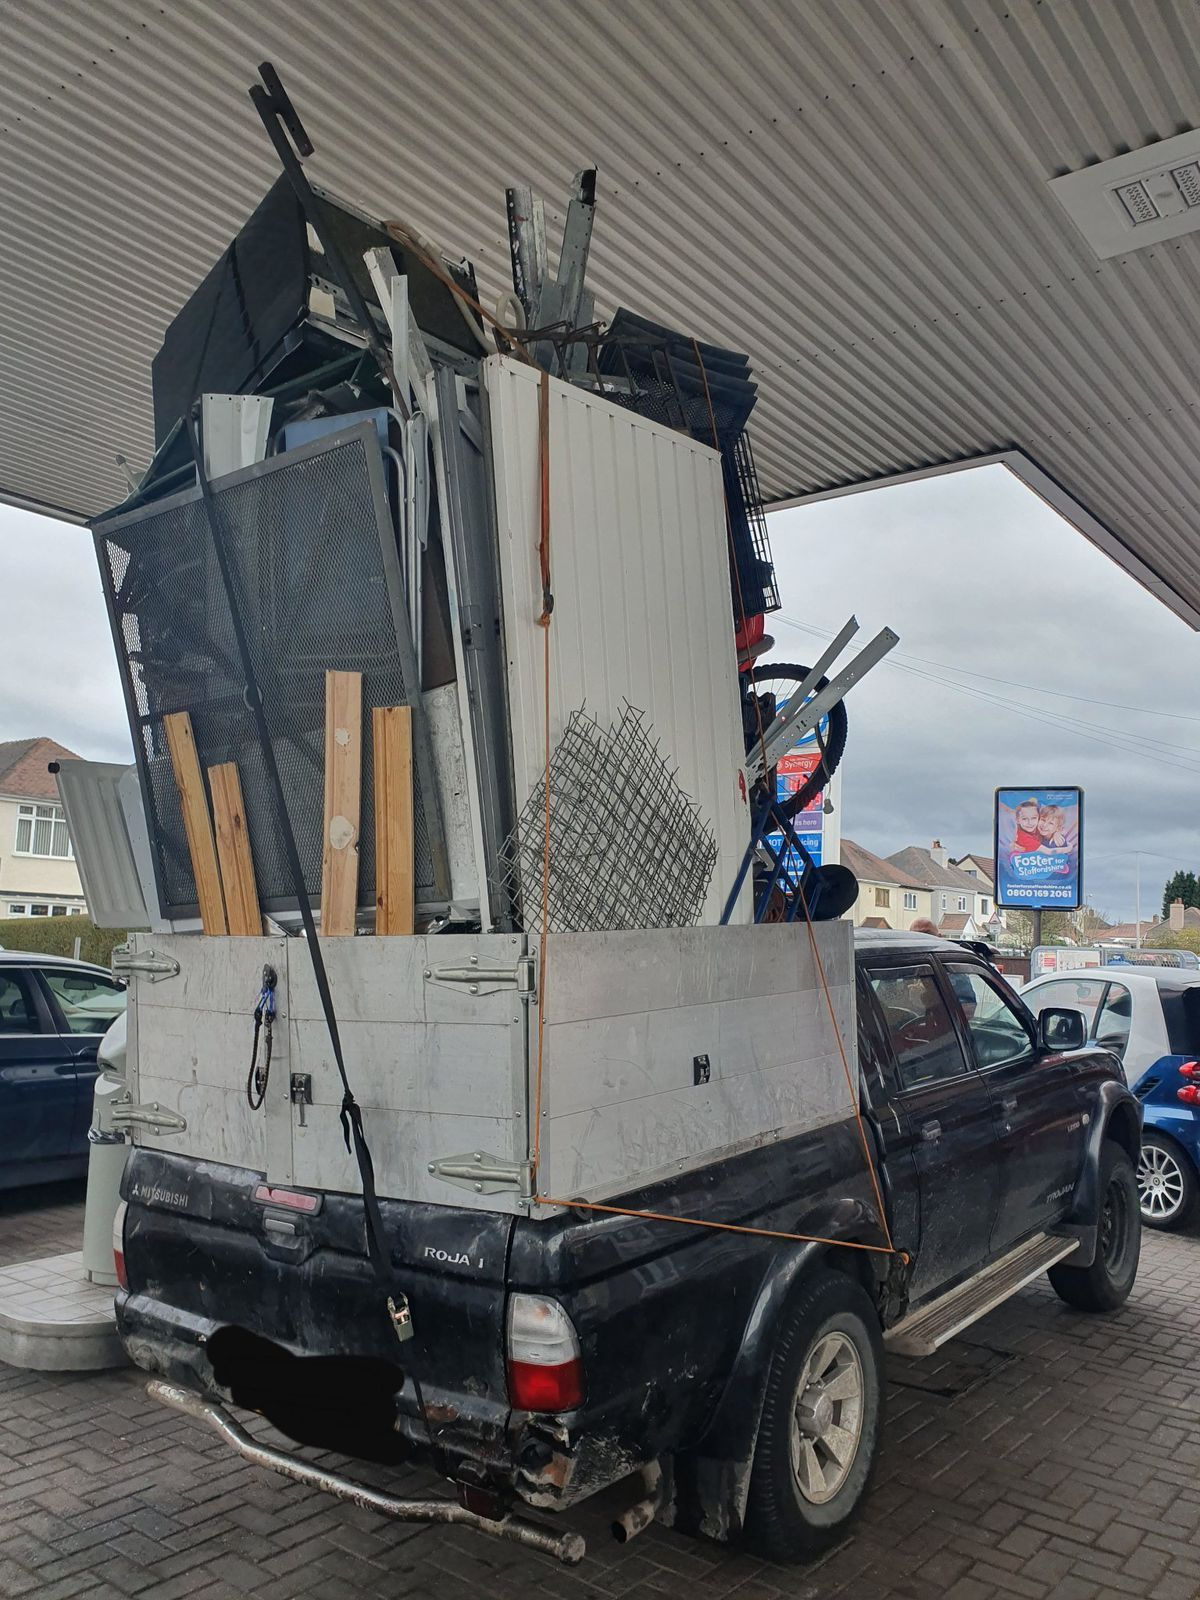 The vehicle piled high with junk (Image: CMPG)